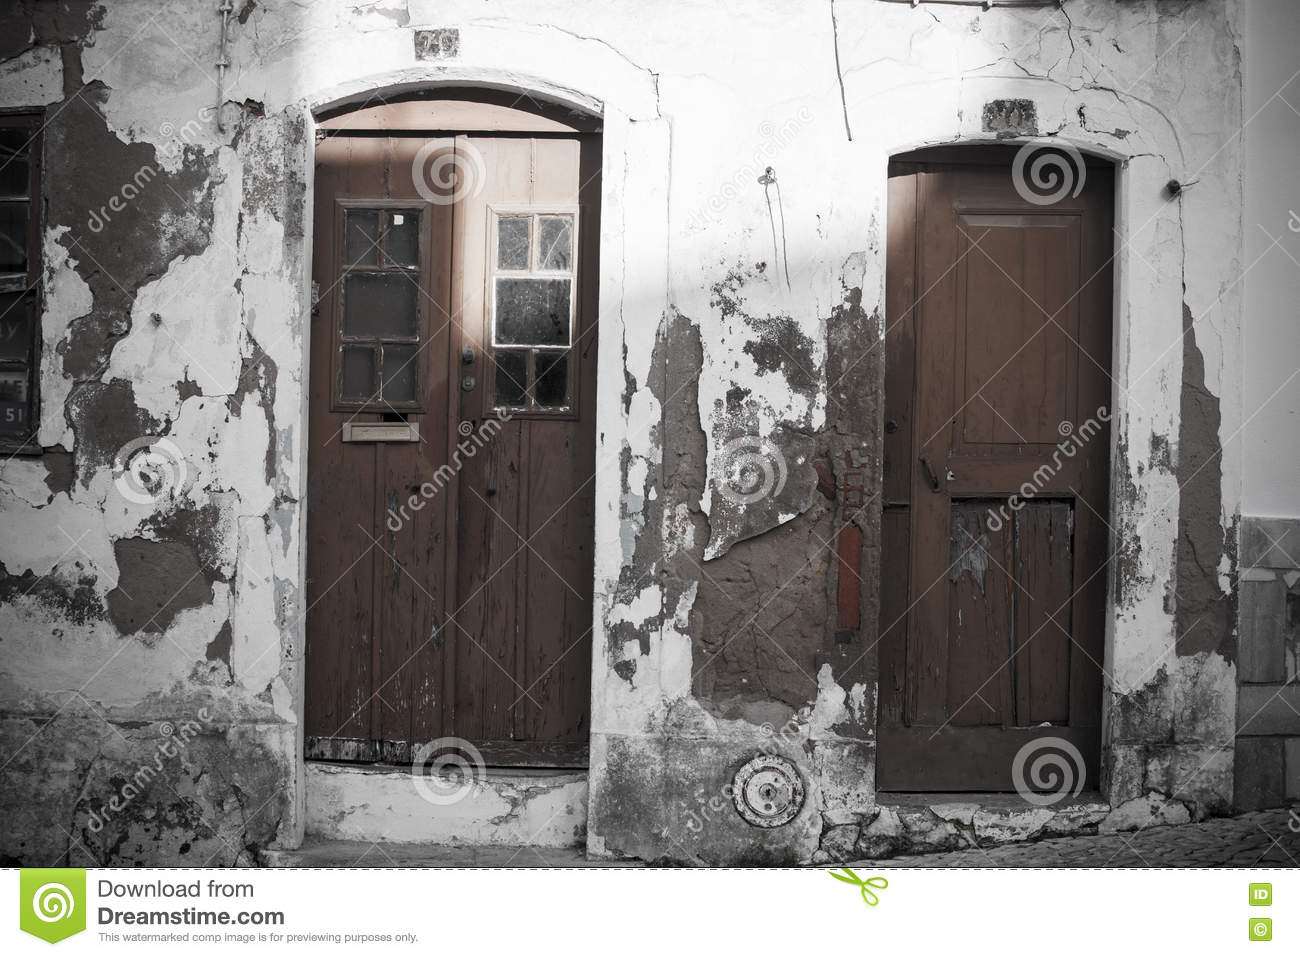 Grunge wall and doors in Mediterranean town